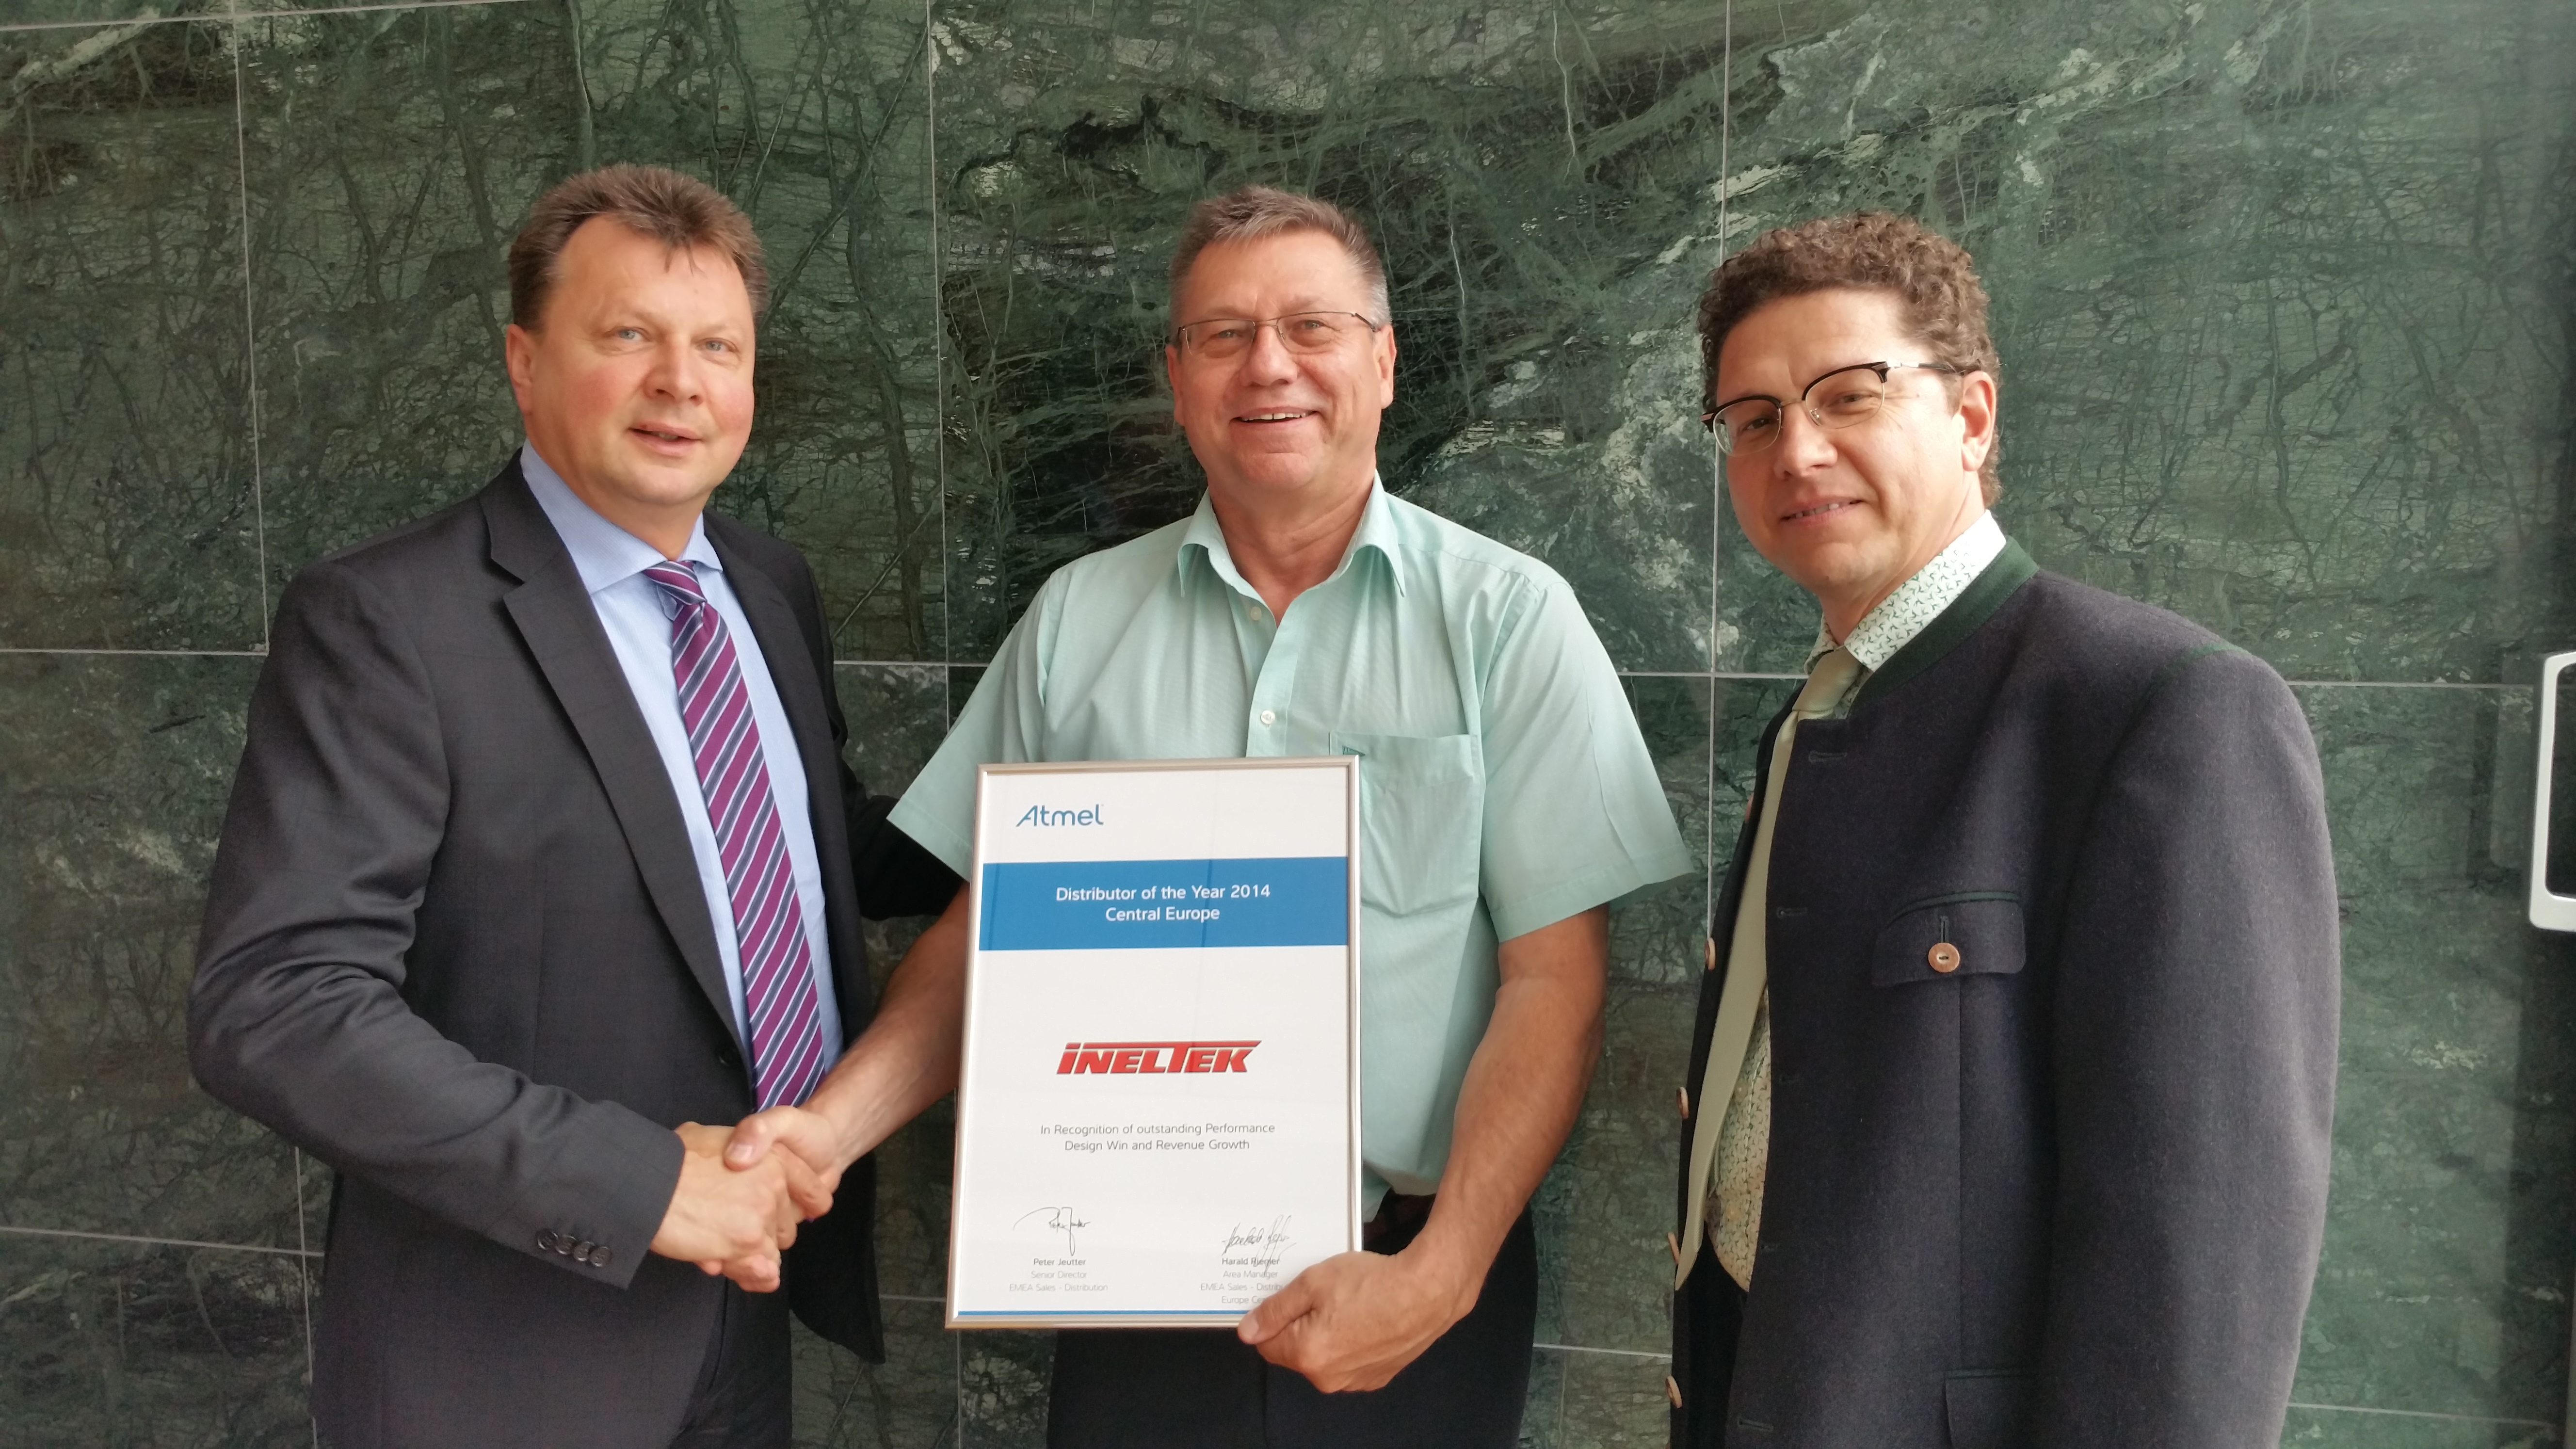 Atmel Awards Ineltek GmbH with EMEA Distributor of the Year 2014